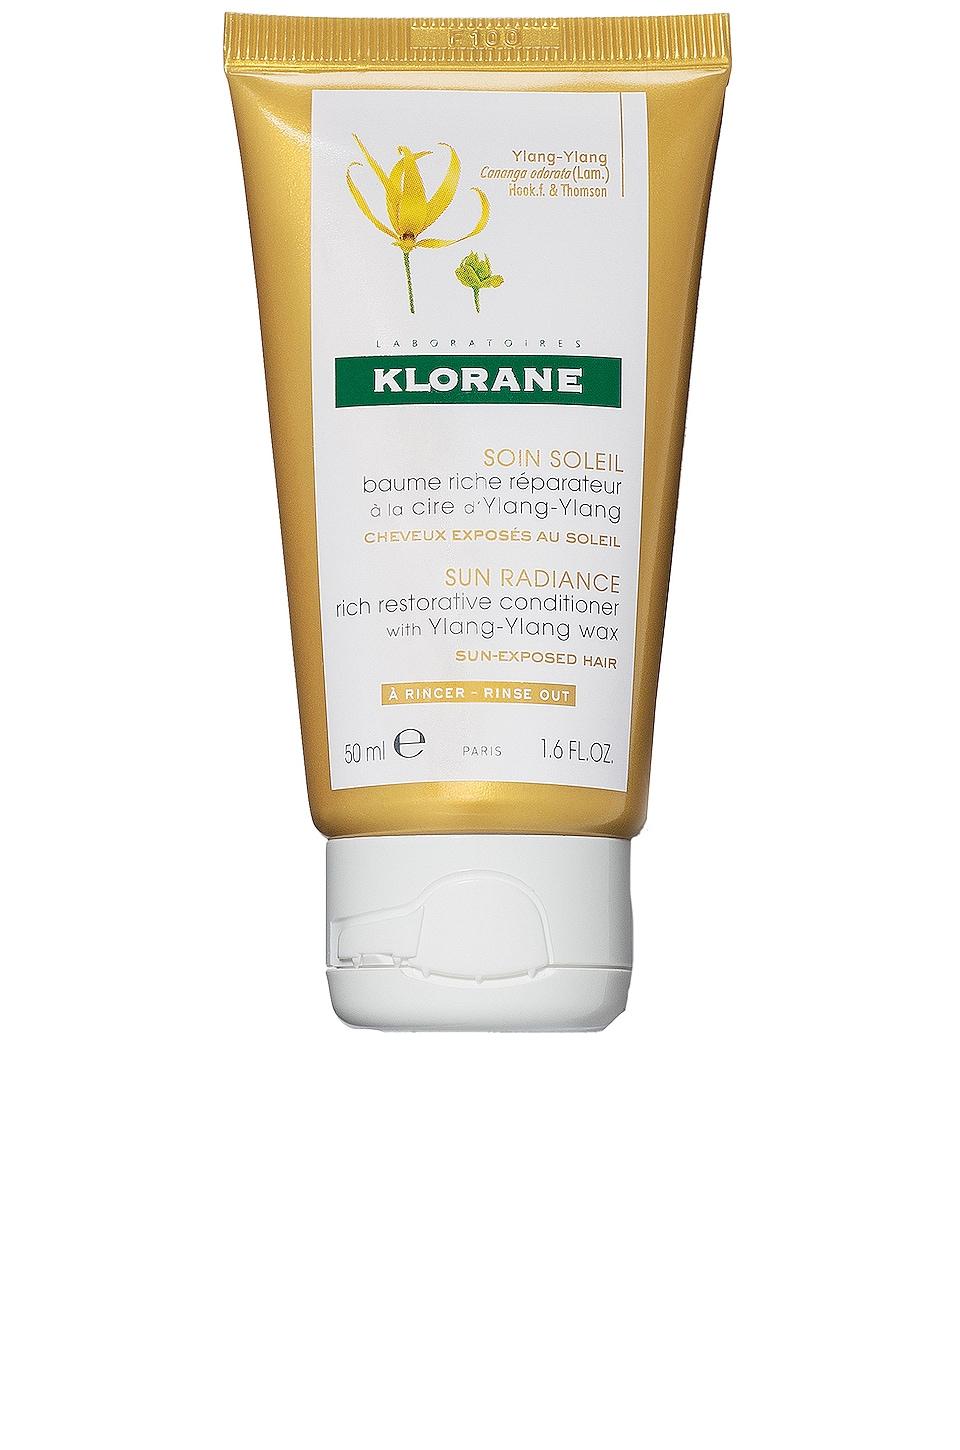 Klorane Travel Restorative Conditioner with Ylang-Ylang